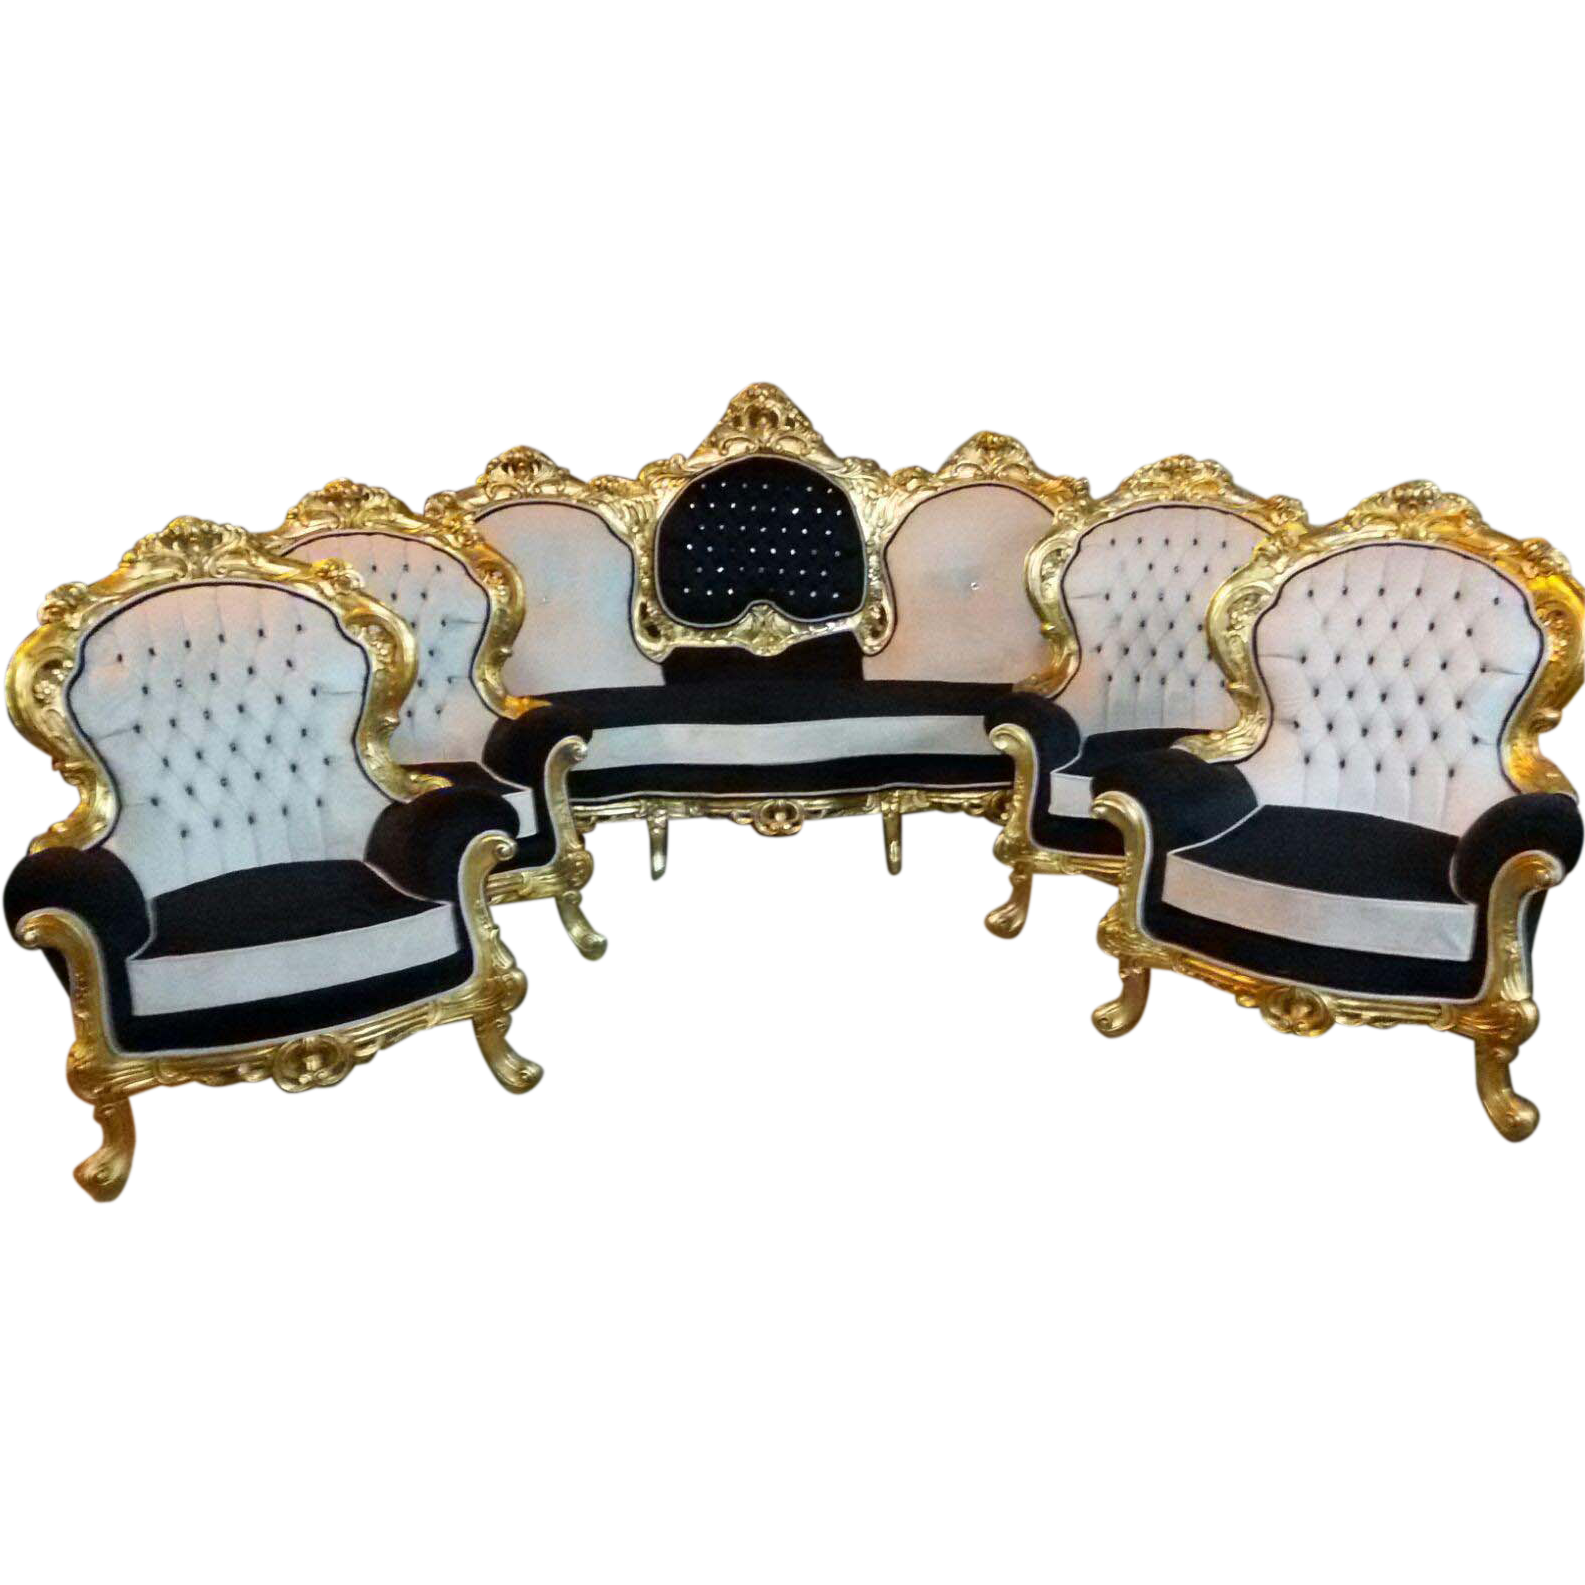 Baroque 5 piece living room set from maisondantique on for 5 piece living room set